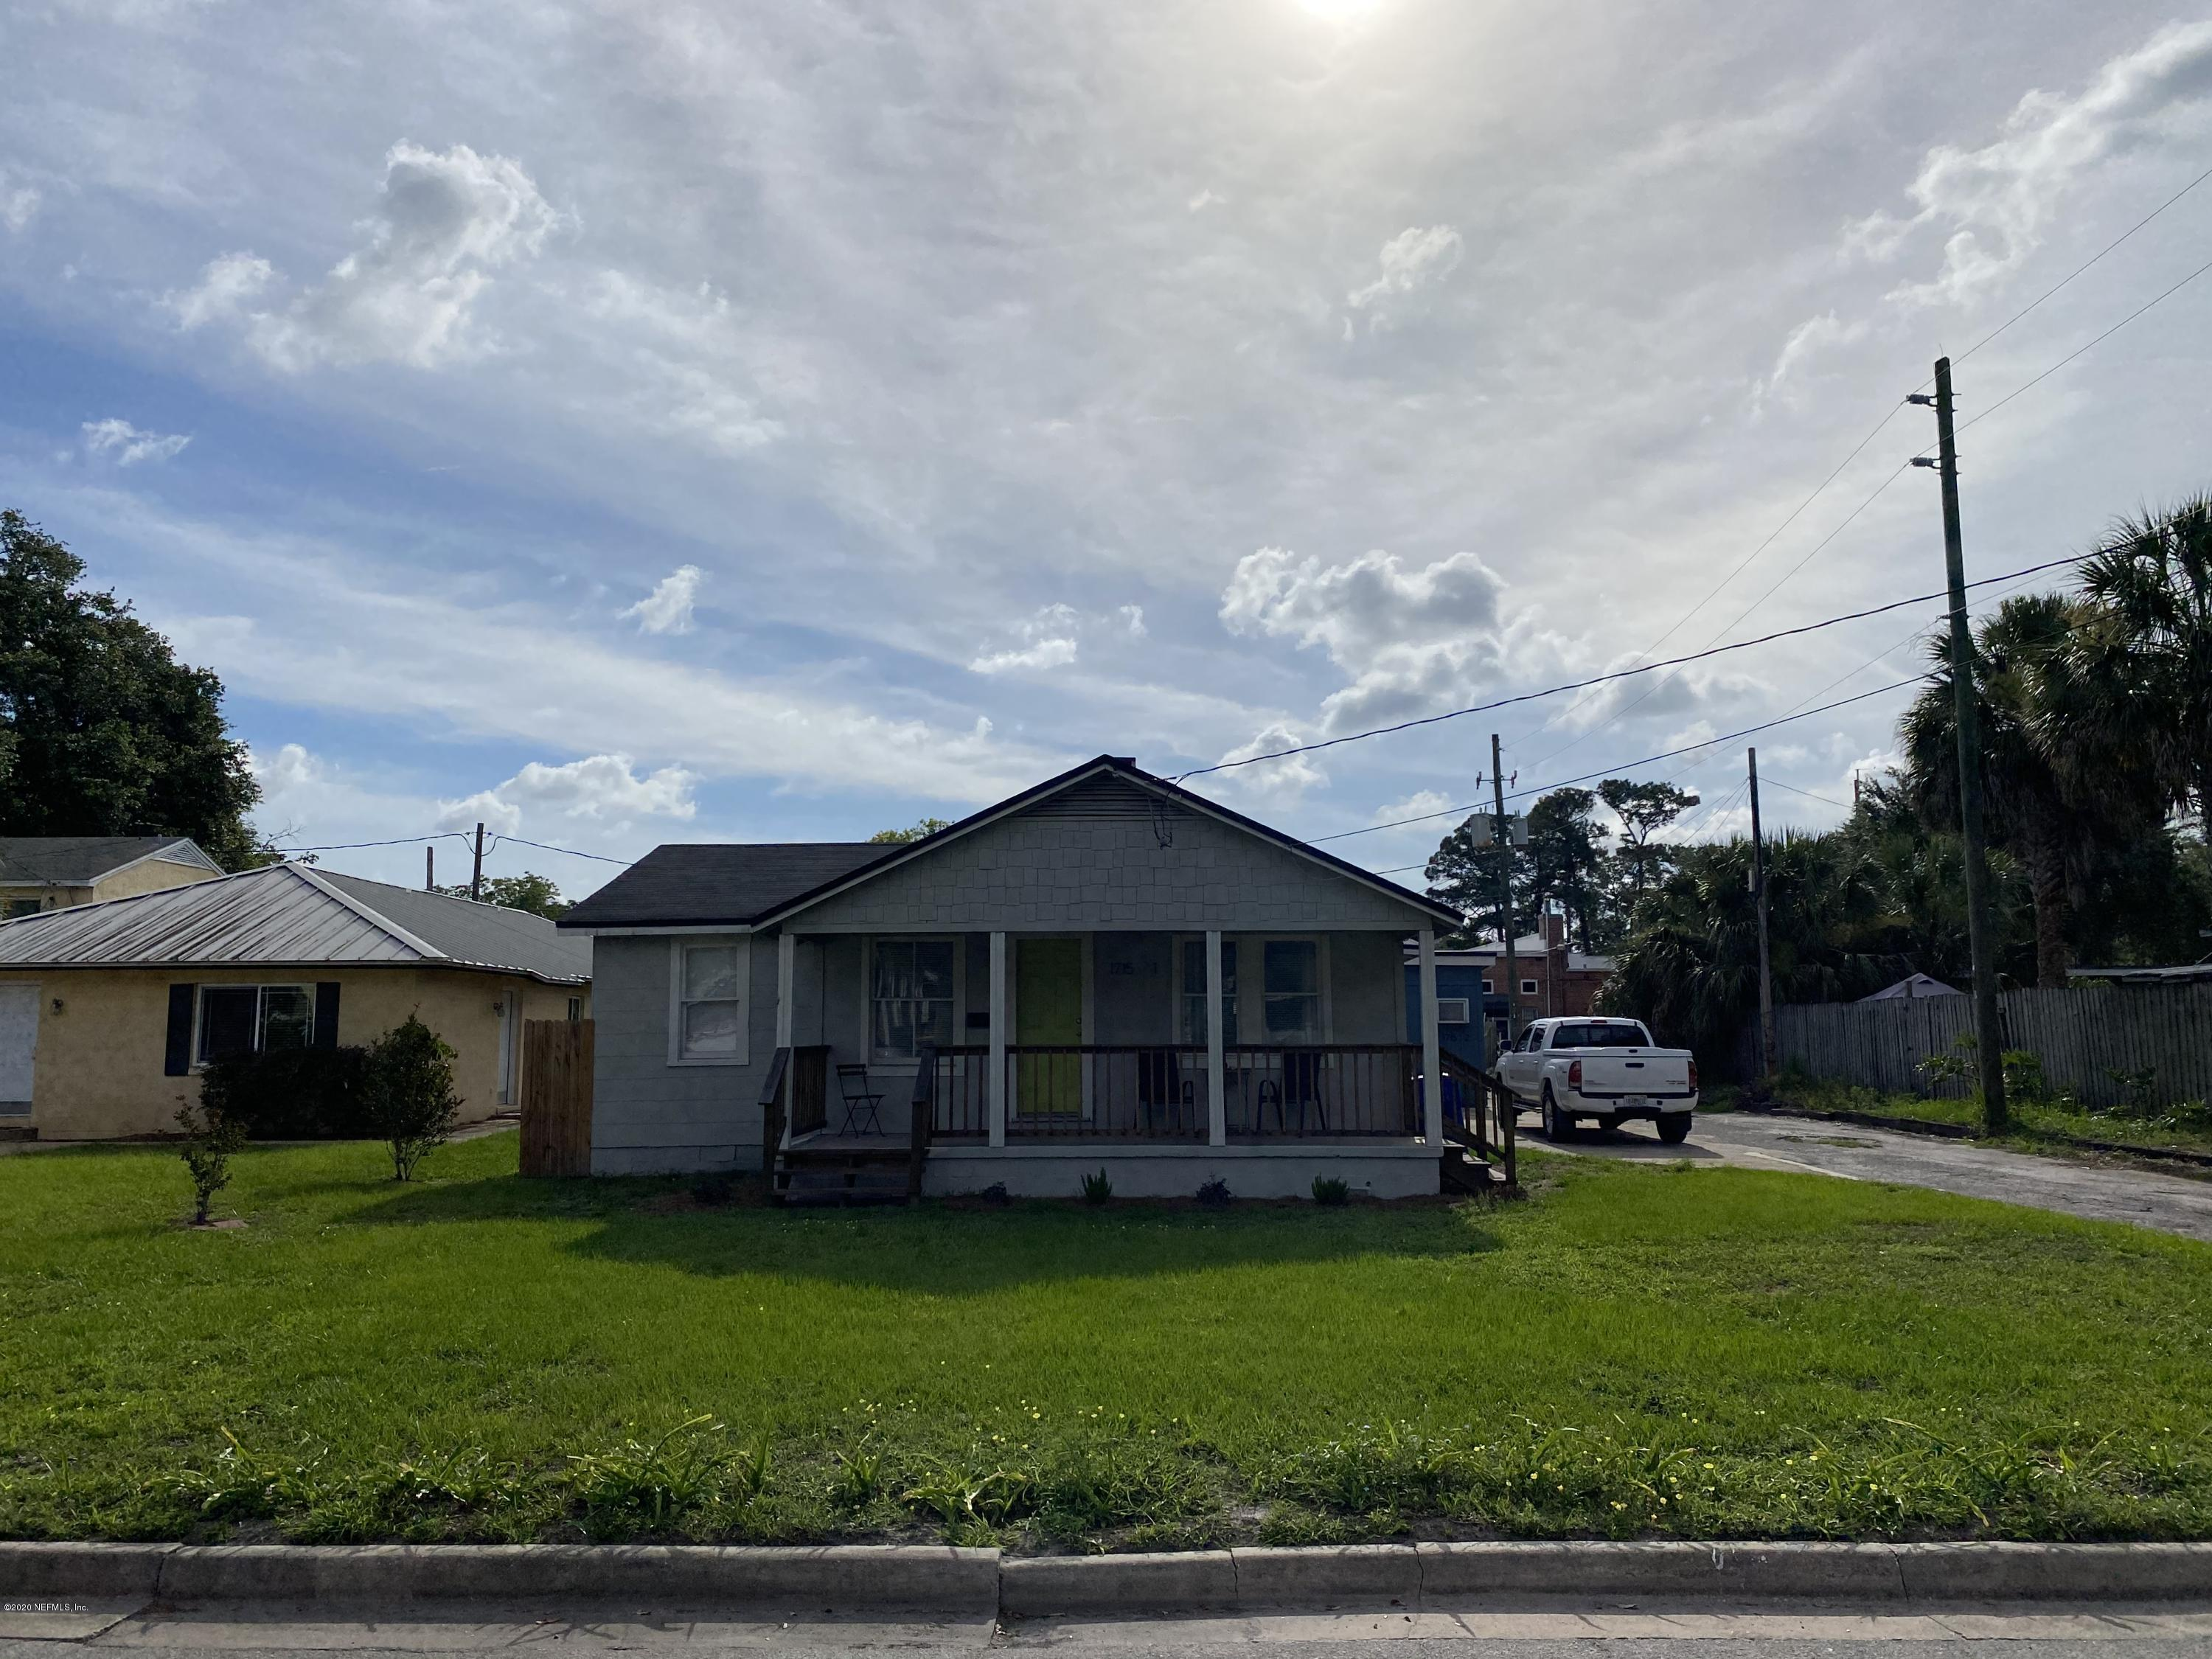 1715 NALDO, JACKSONVILLE, FLORIDA 32207, 4 Bedrooms Bedrooms, ,3 BathroomsBathrooms,Investment / MultiFamily,For sale,NALDO,1057114